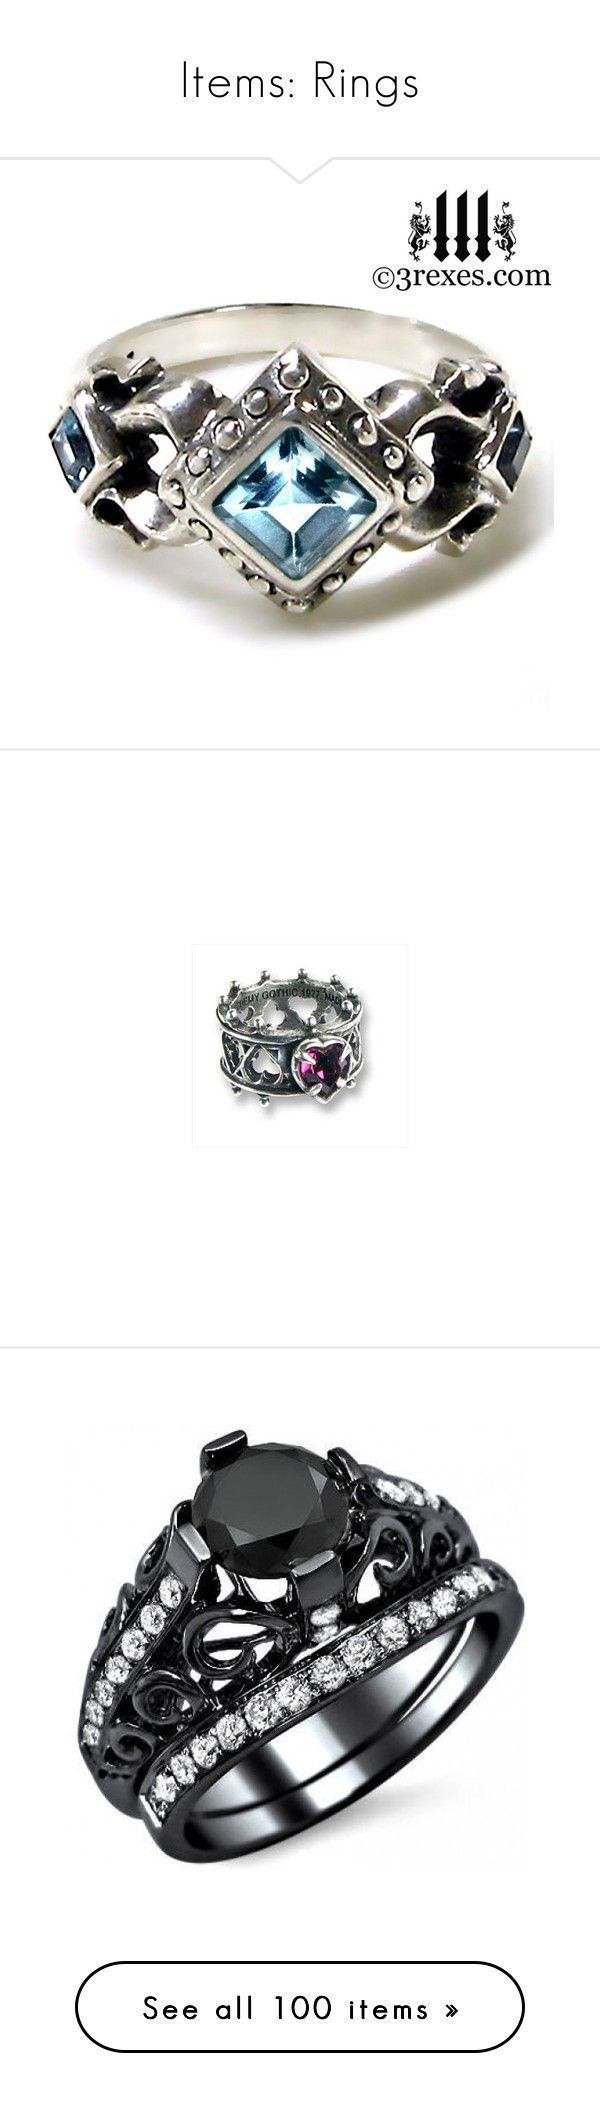 """""""Items: Rings"""" by stephyroth ❤ liked on Polyvore featuring jewelry, rings, accessories, green wedding rings, blue topaz wedding rings, silver rings, green engagement rings, silver wedding rings, goth and gothic rings"""